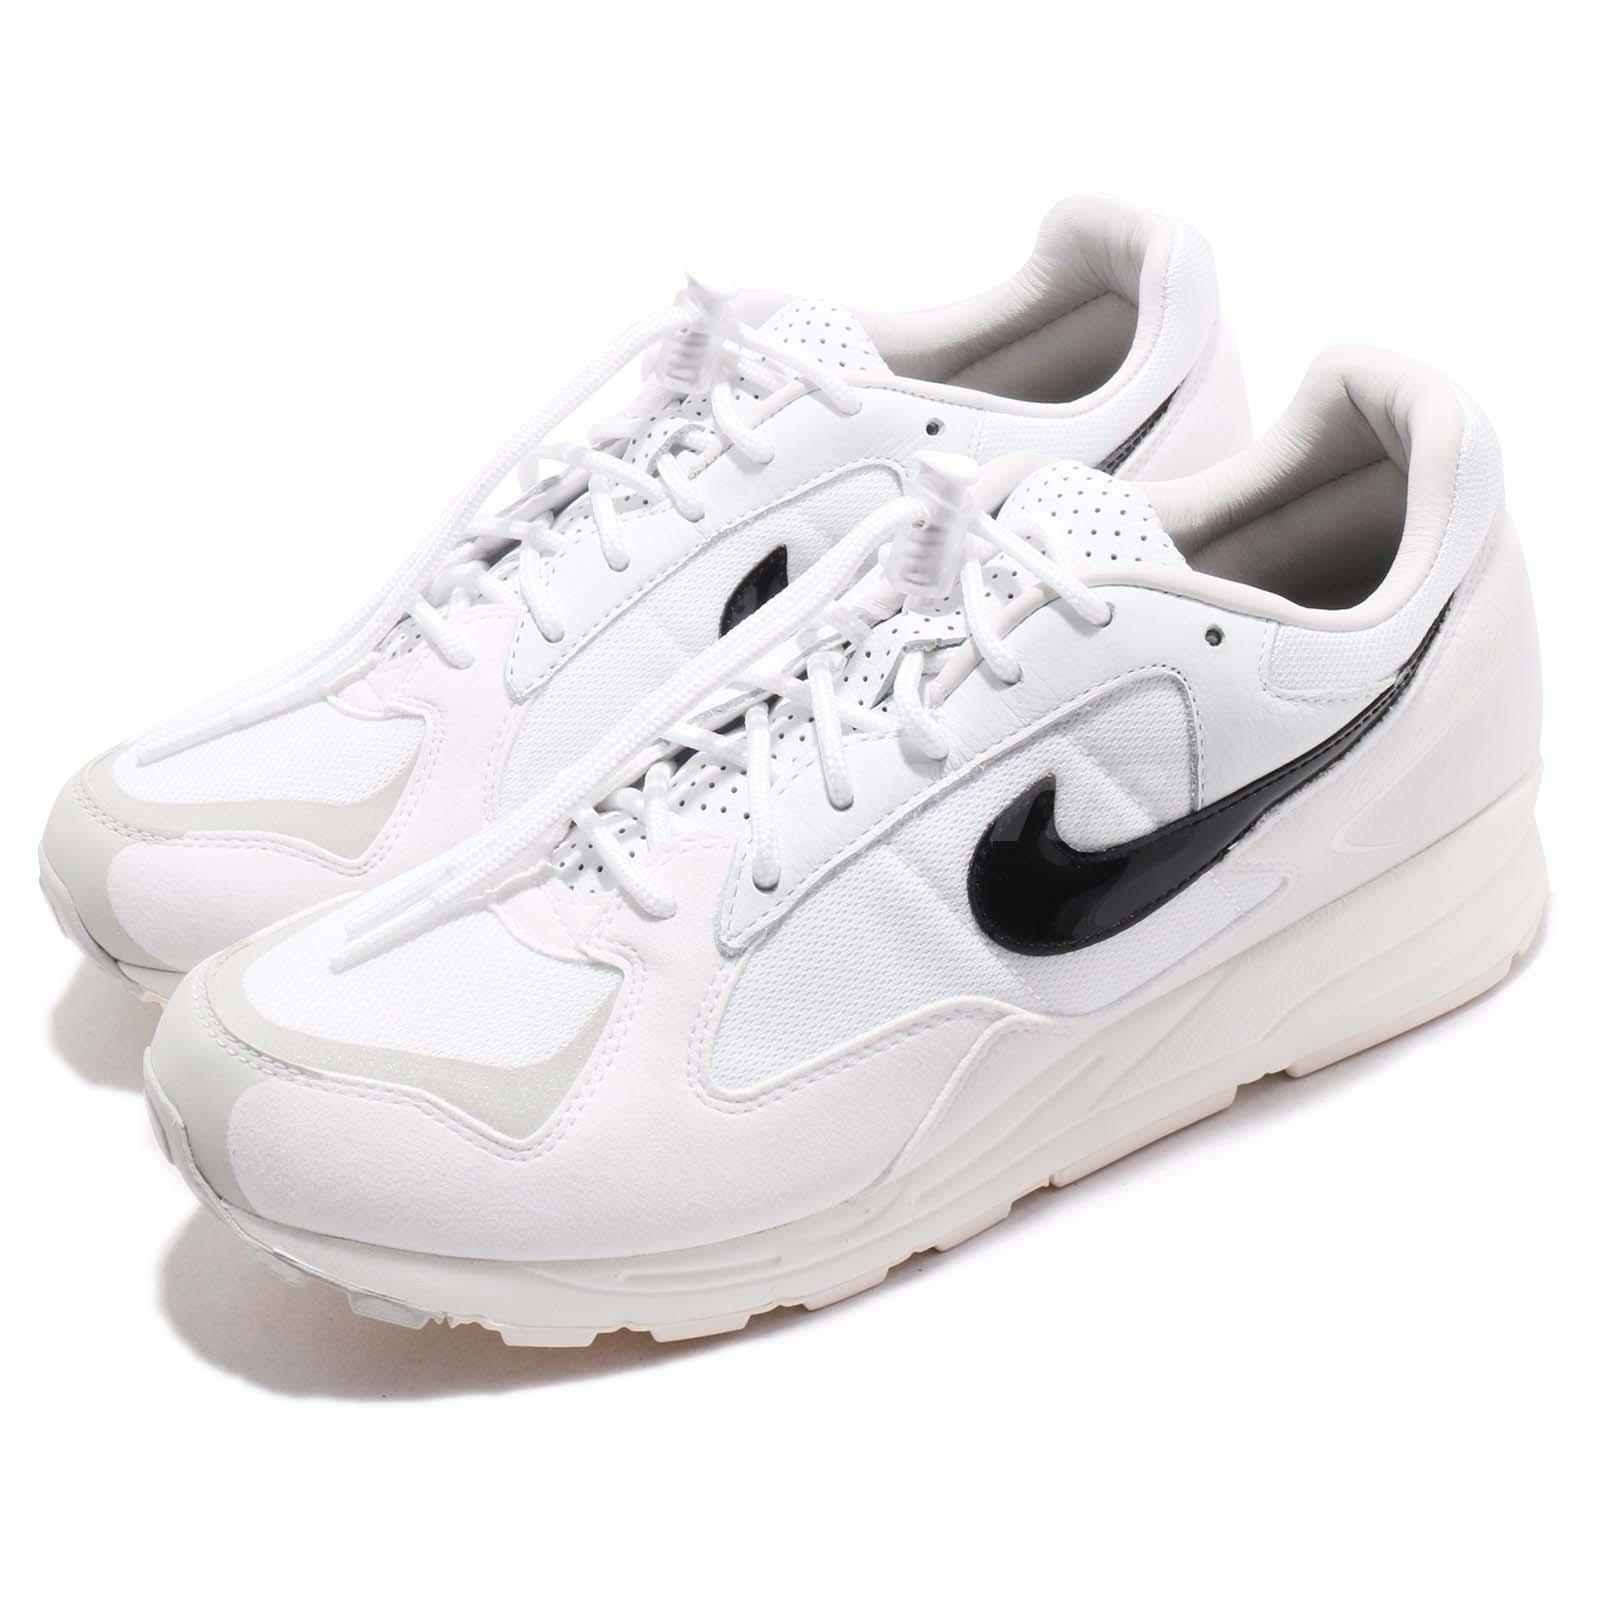 Details about Fear of God X Nike Air Skylon II   FOG White Black Mens  Limited Shoes BQ2752-100 fe6f086a3